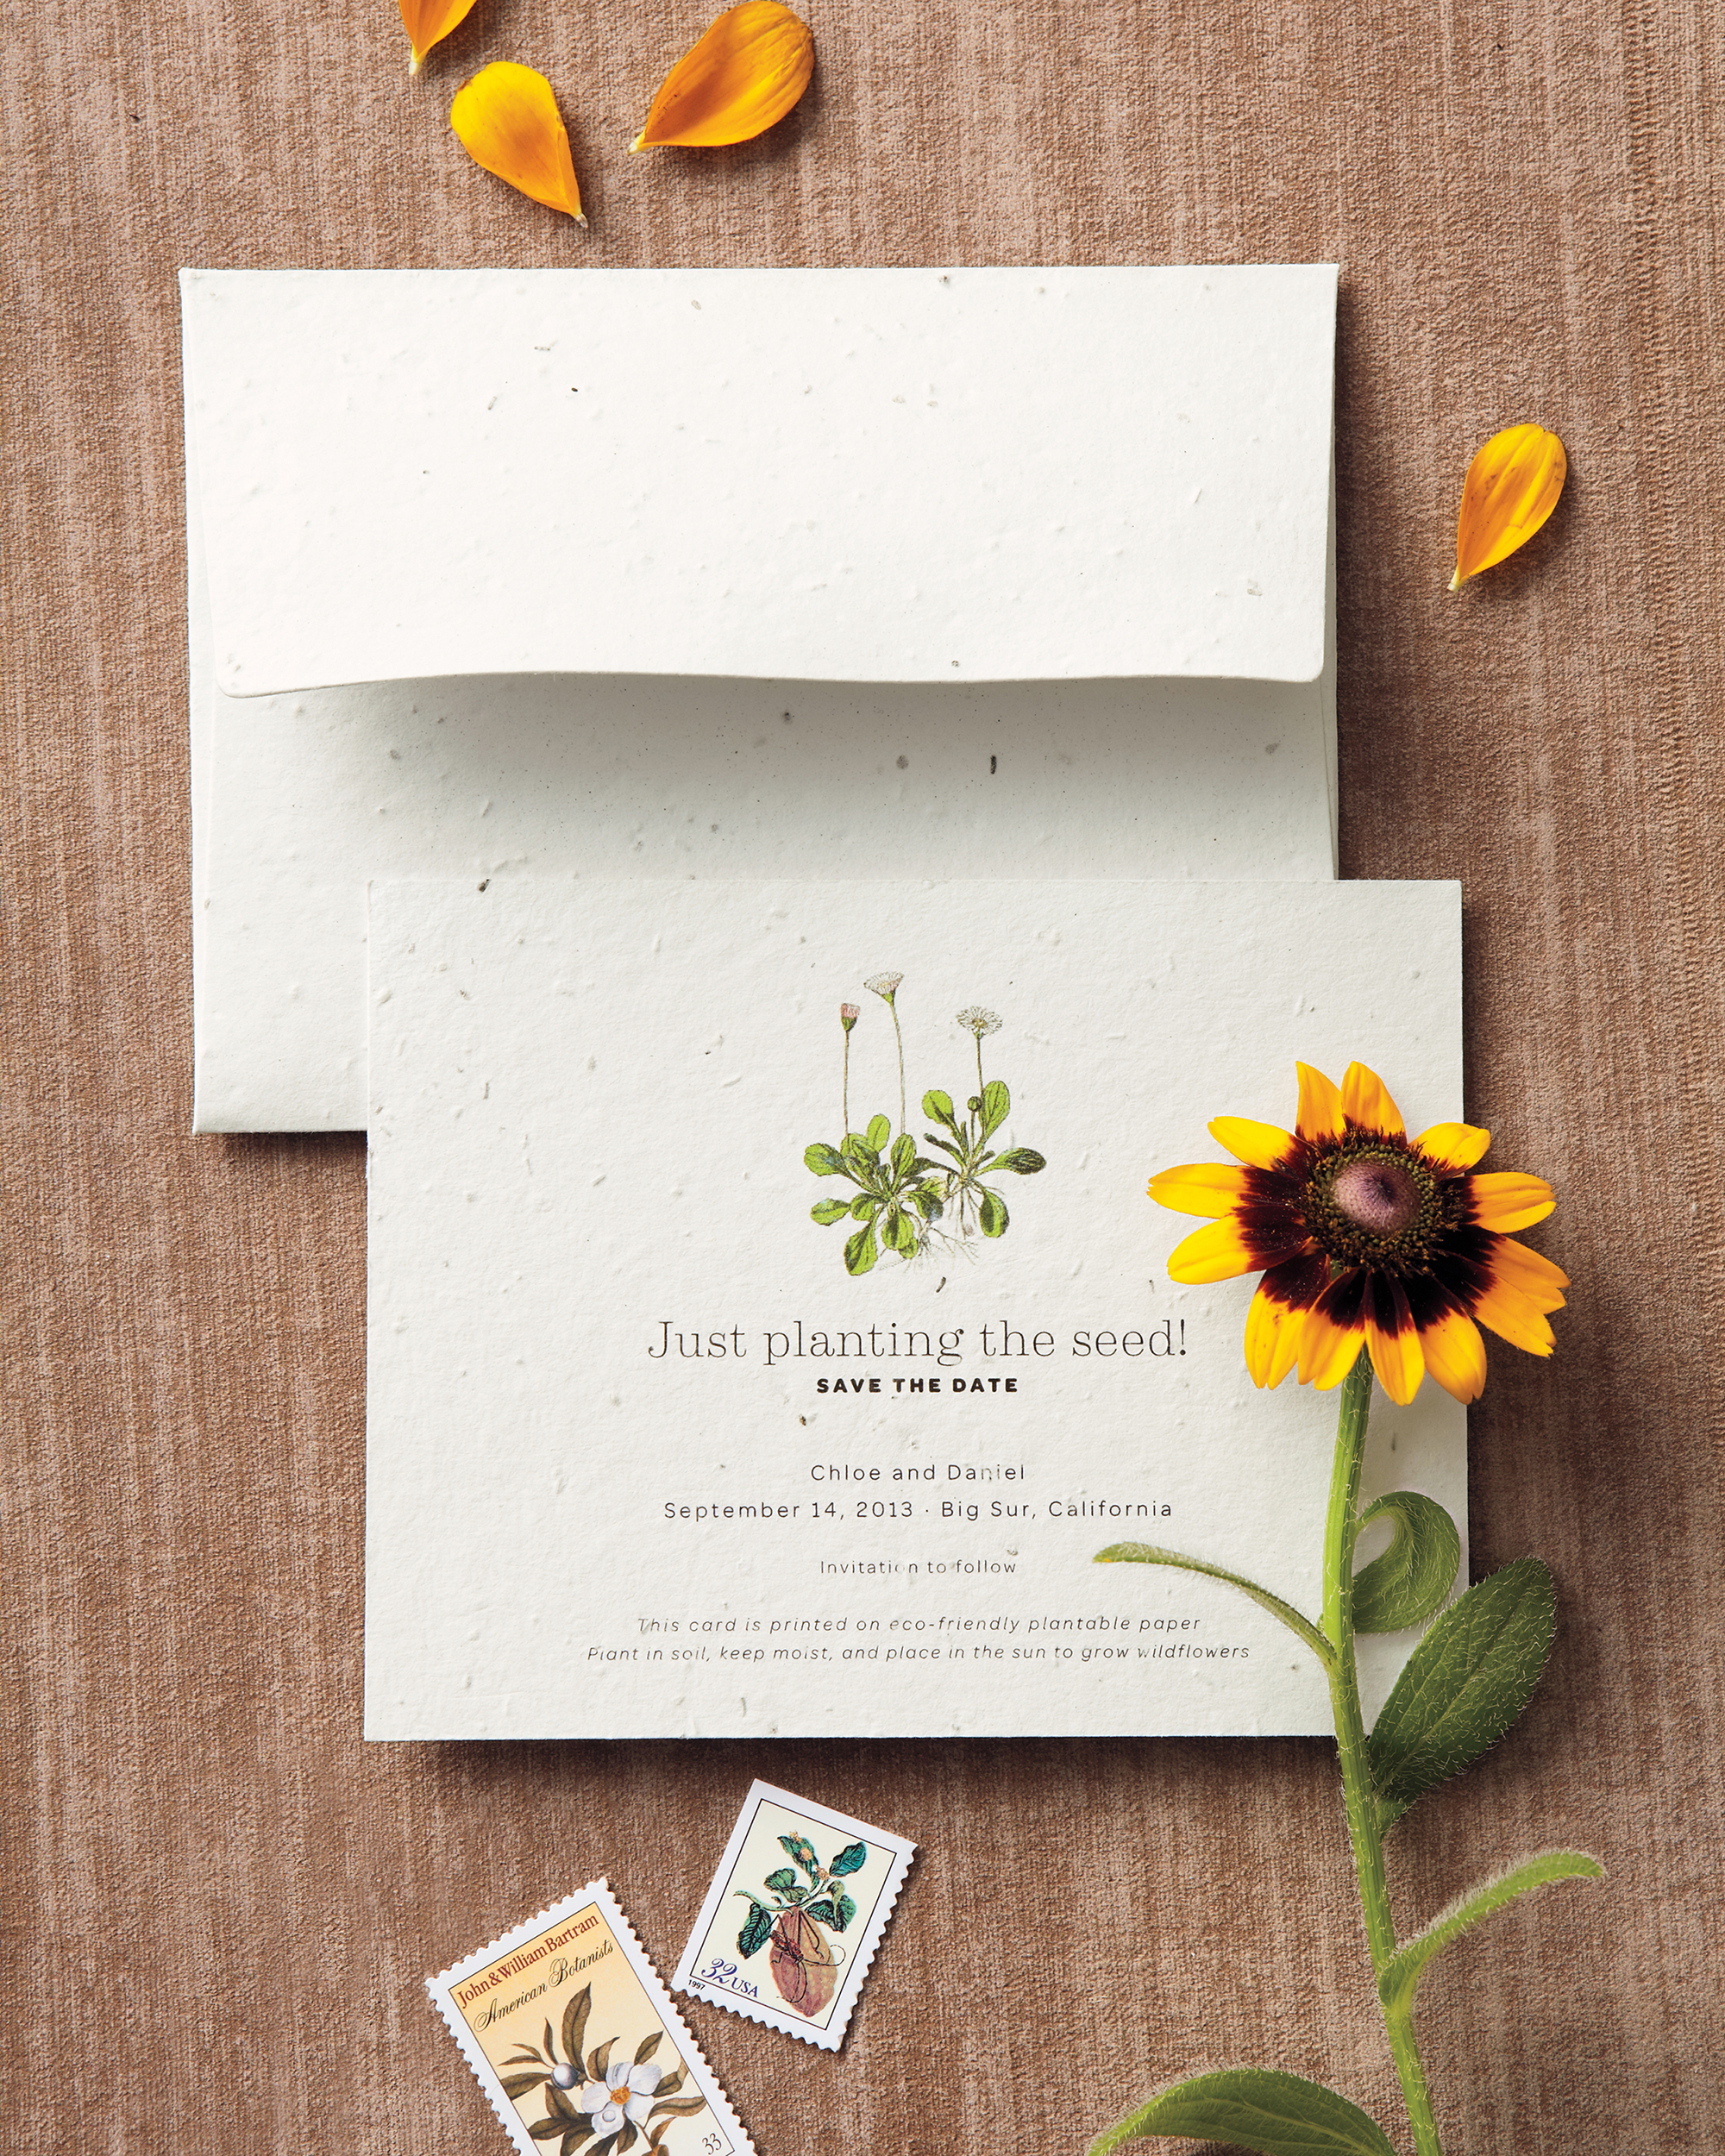 save-the-date-md109189.jpg